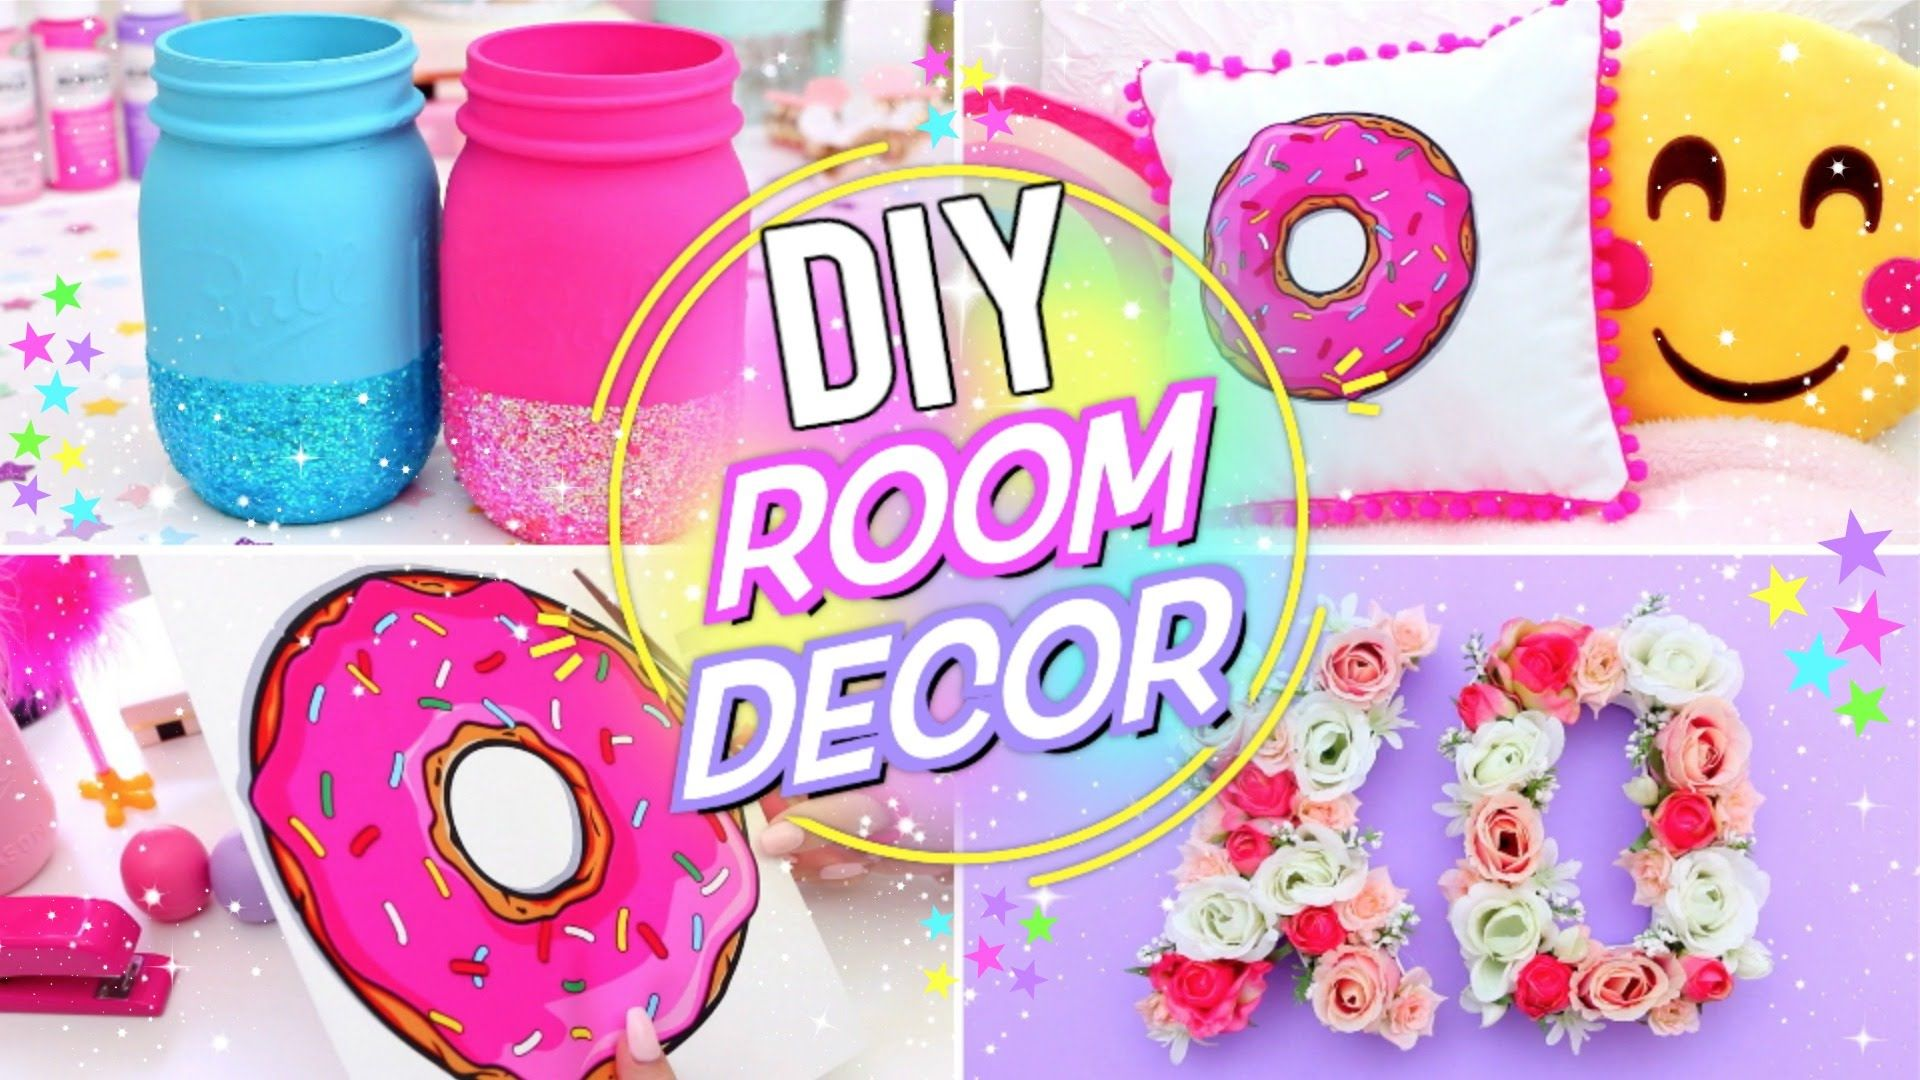 Diy Bright Fun Room Decor Pinterest Room Decor For Spring